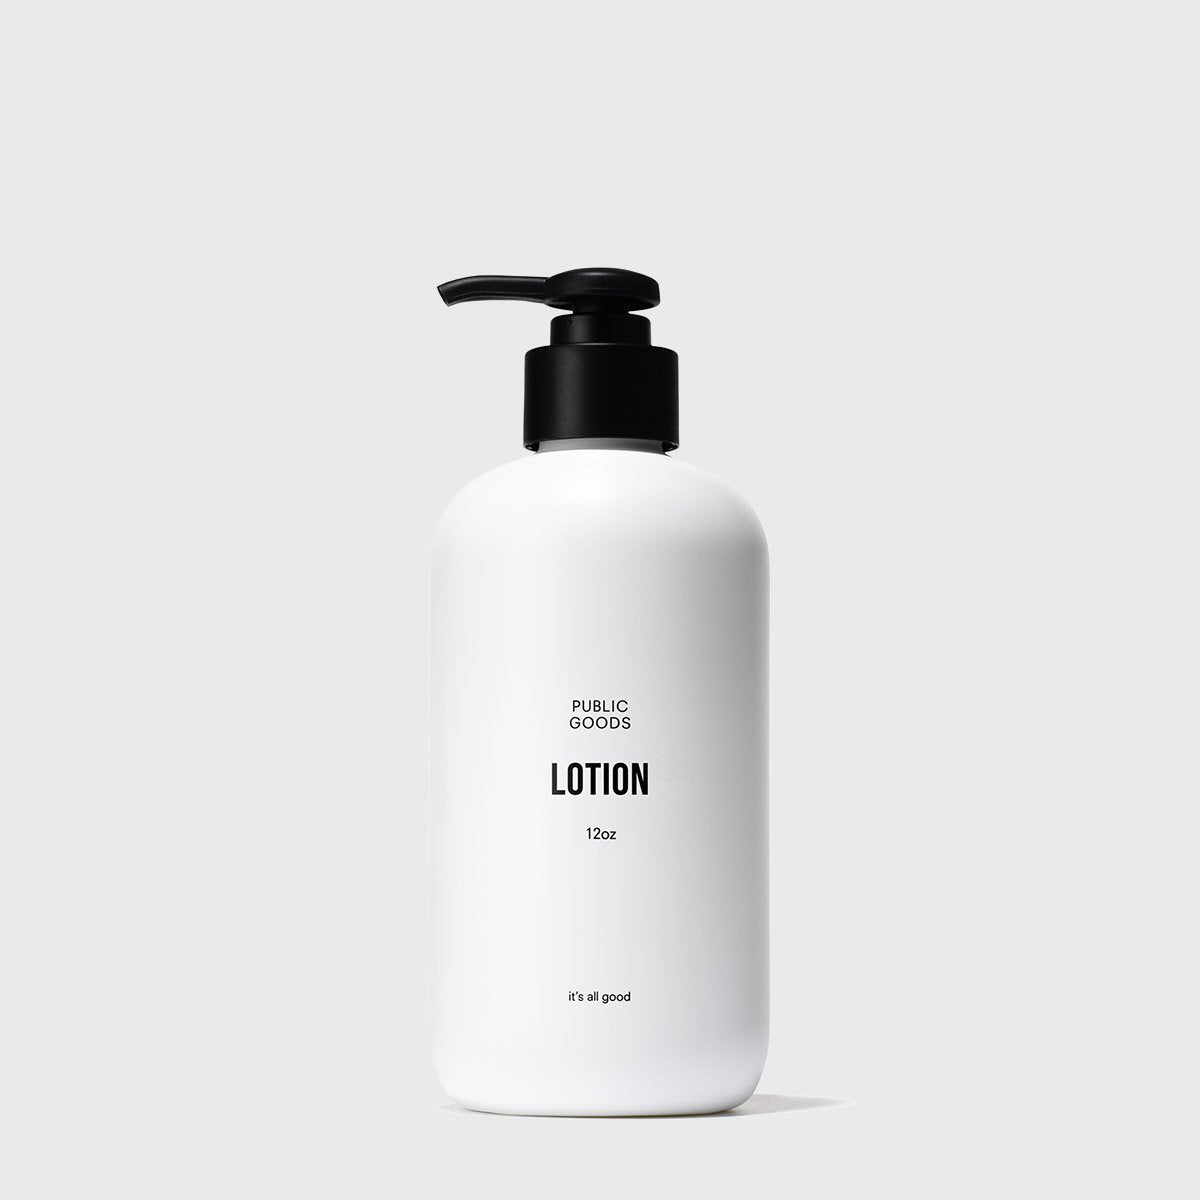 12 ounce bottle of lotion